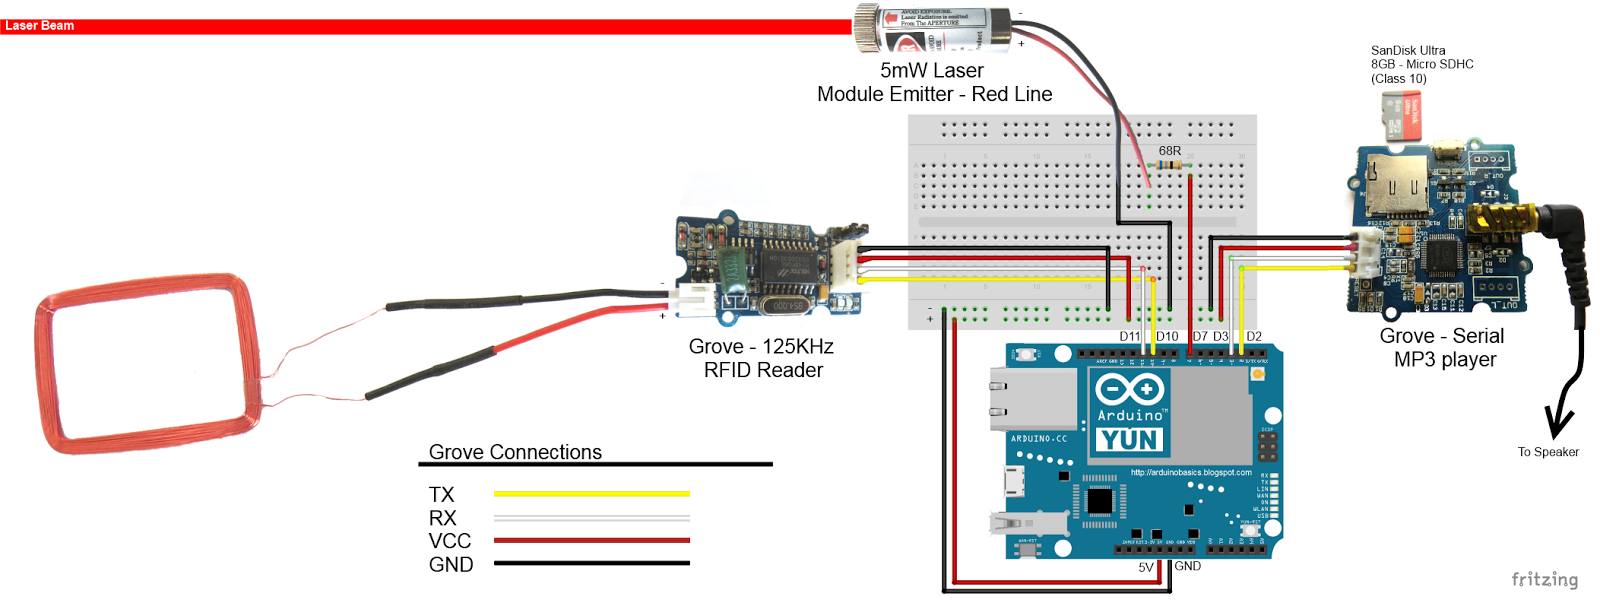 Posts With Sms Label To Send Using Gsm Modem And Arduino Electronic Circuit Projects Fritzing Diagram For Seeeduino Cloud